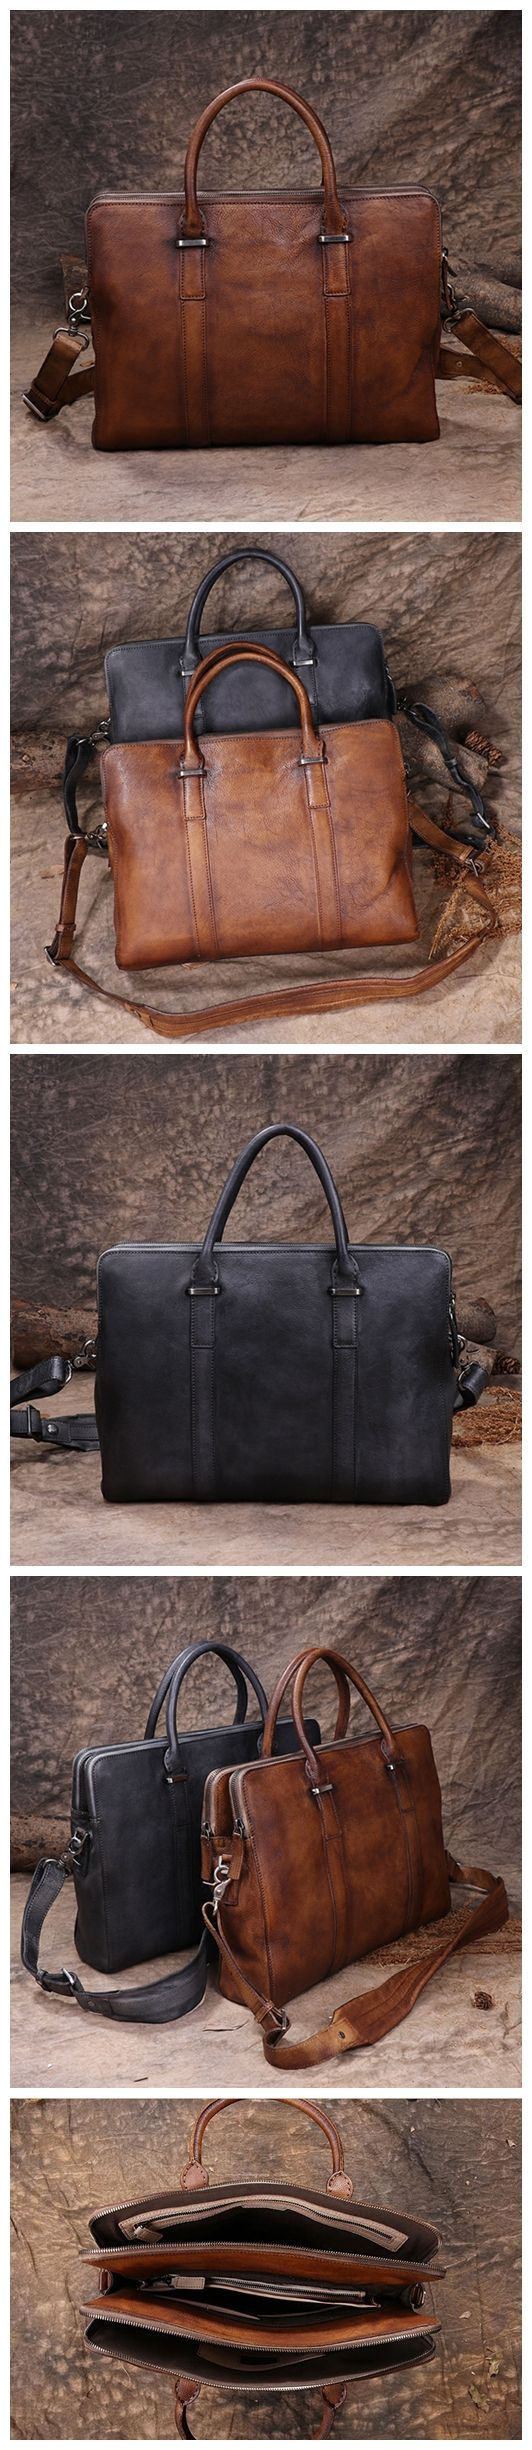 Handmade Vintage Leather Briefcase Men Business Bag Handbag Fashion Laptop Bag 14119